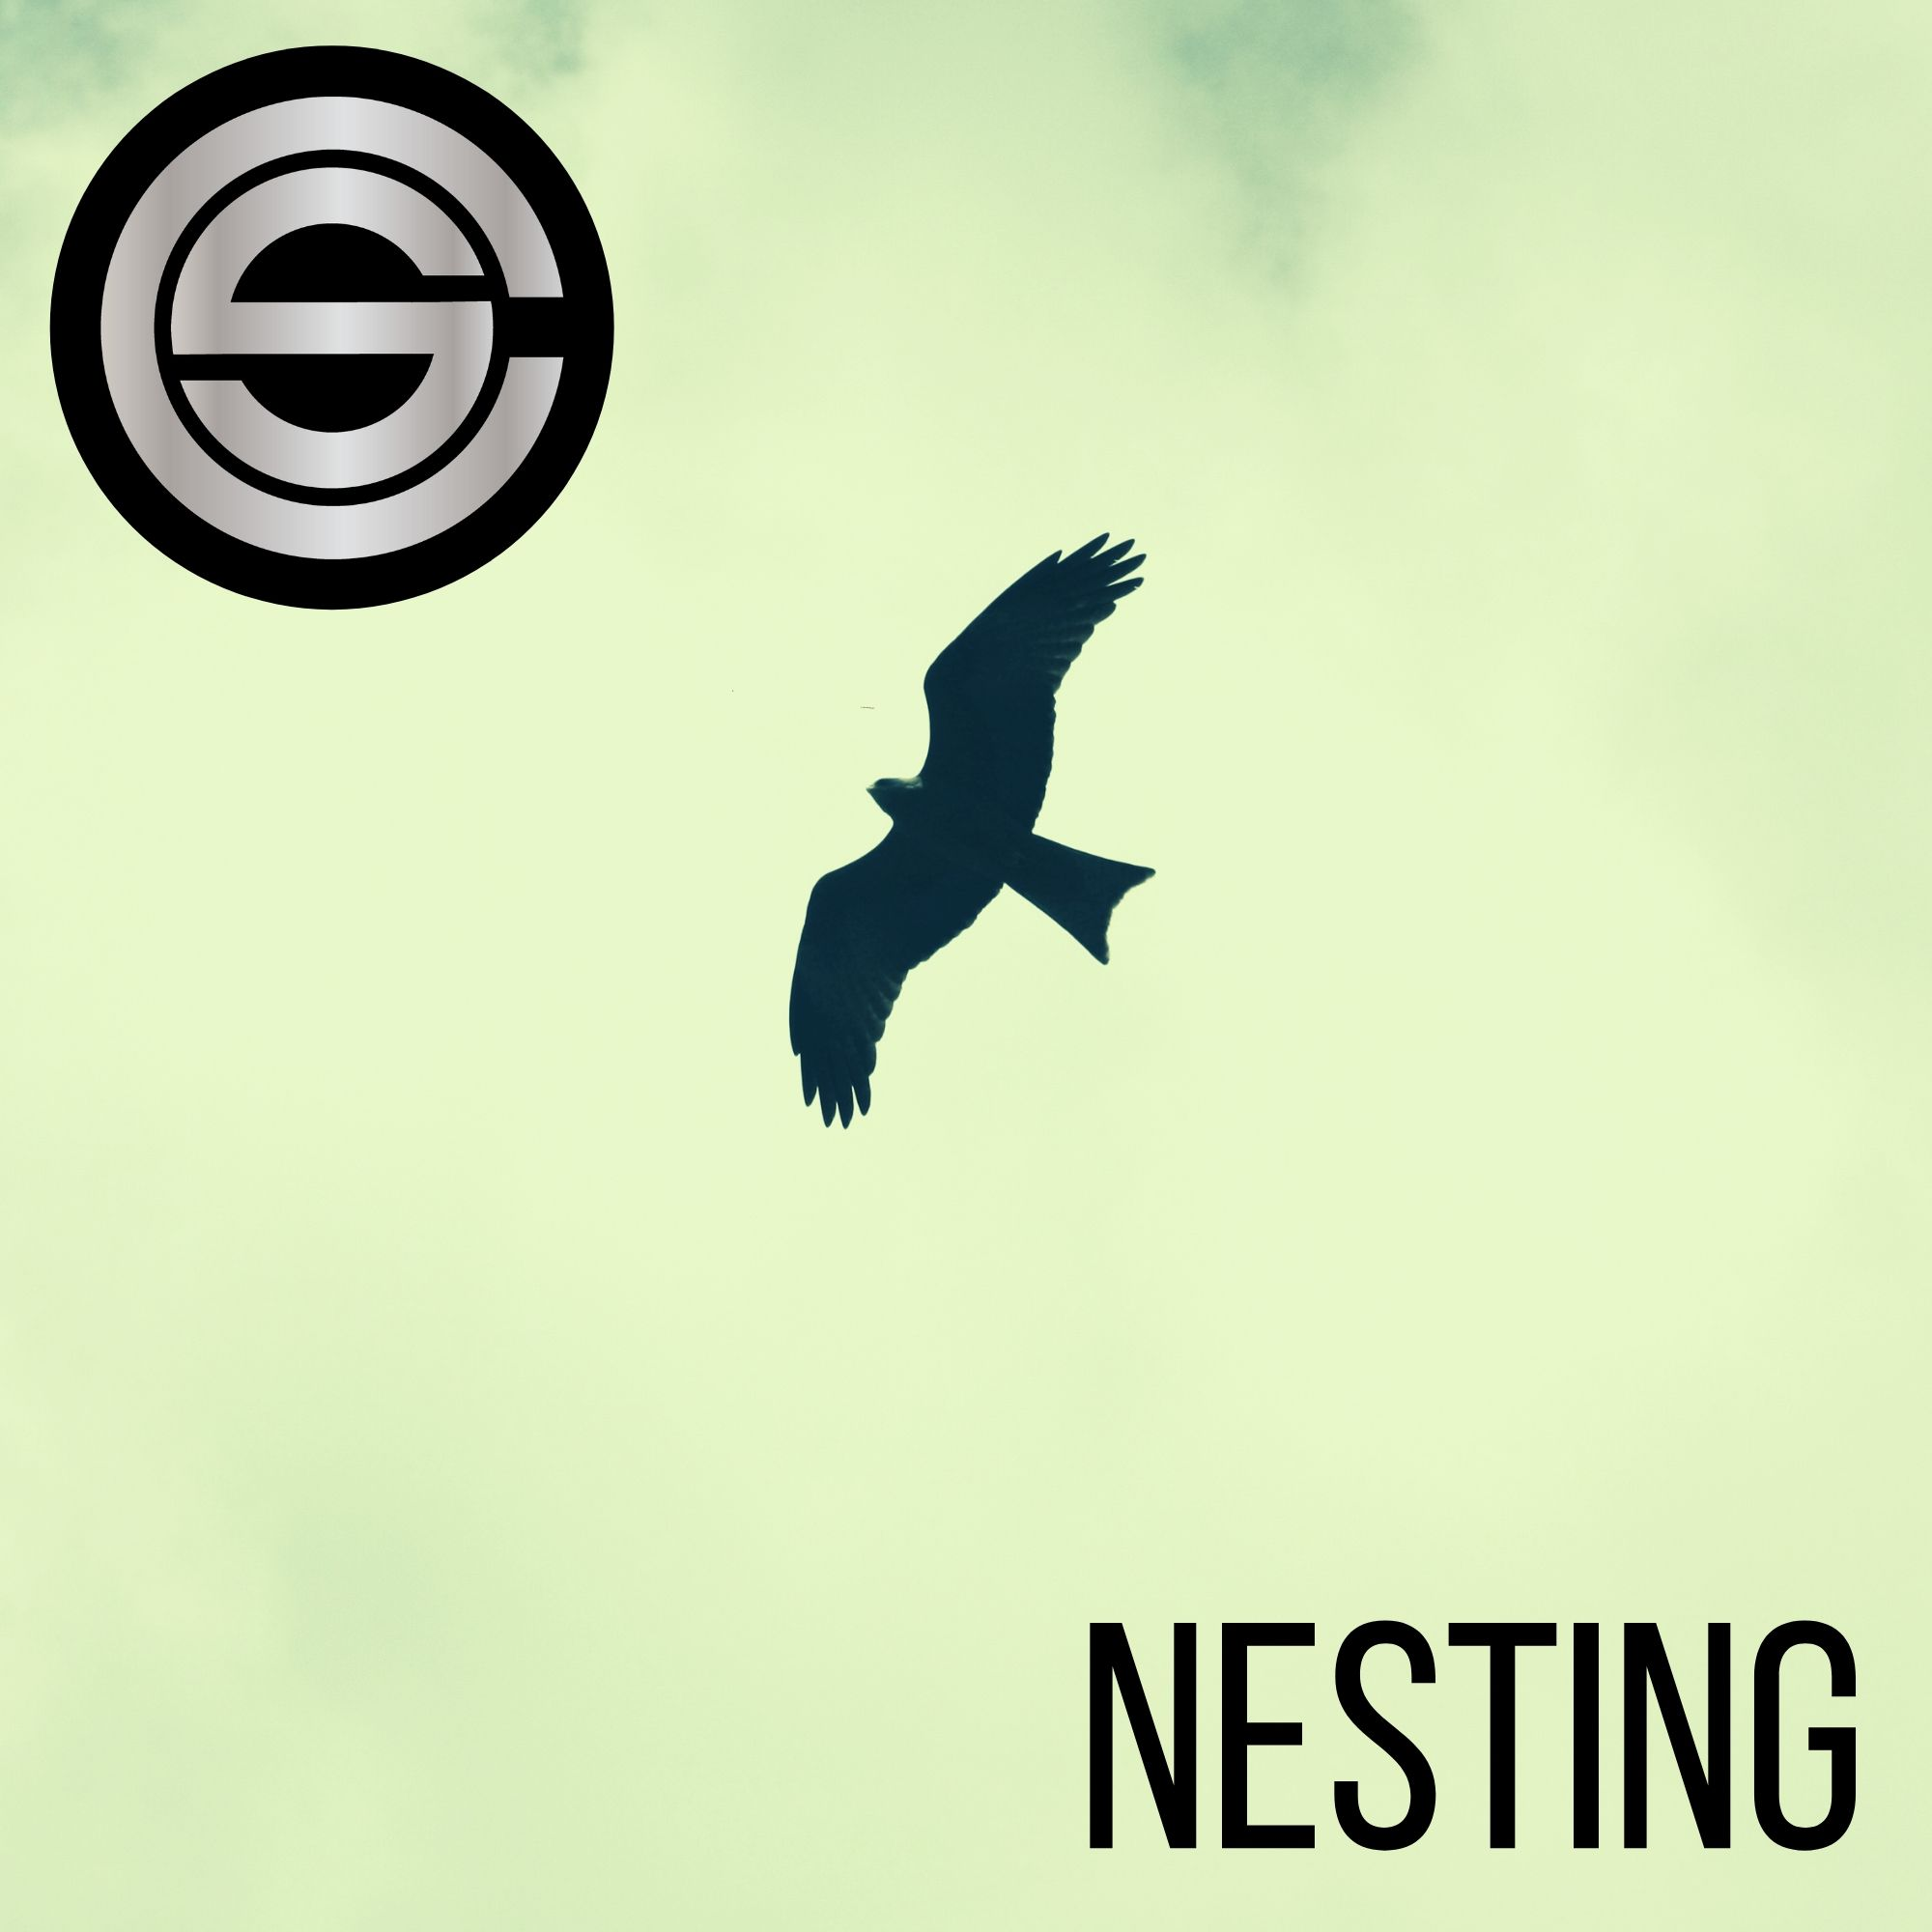 Nesting by Chris Swan